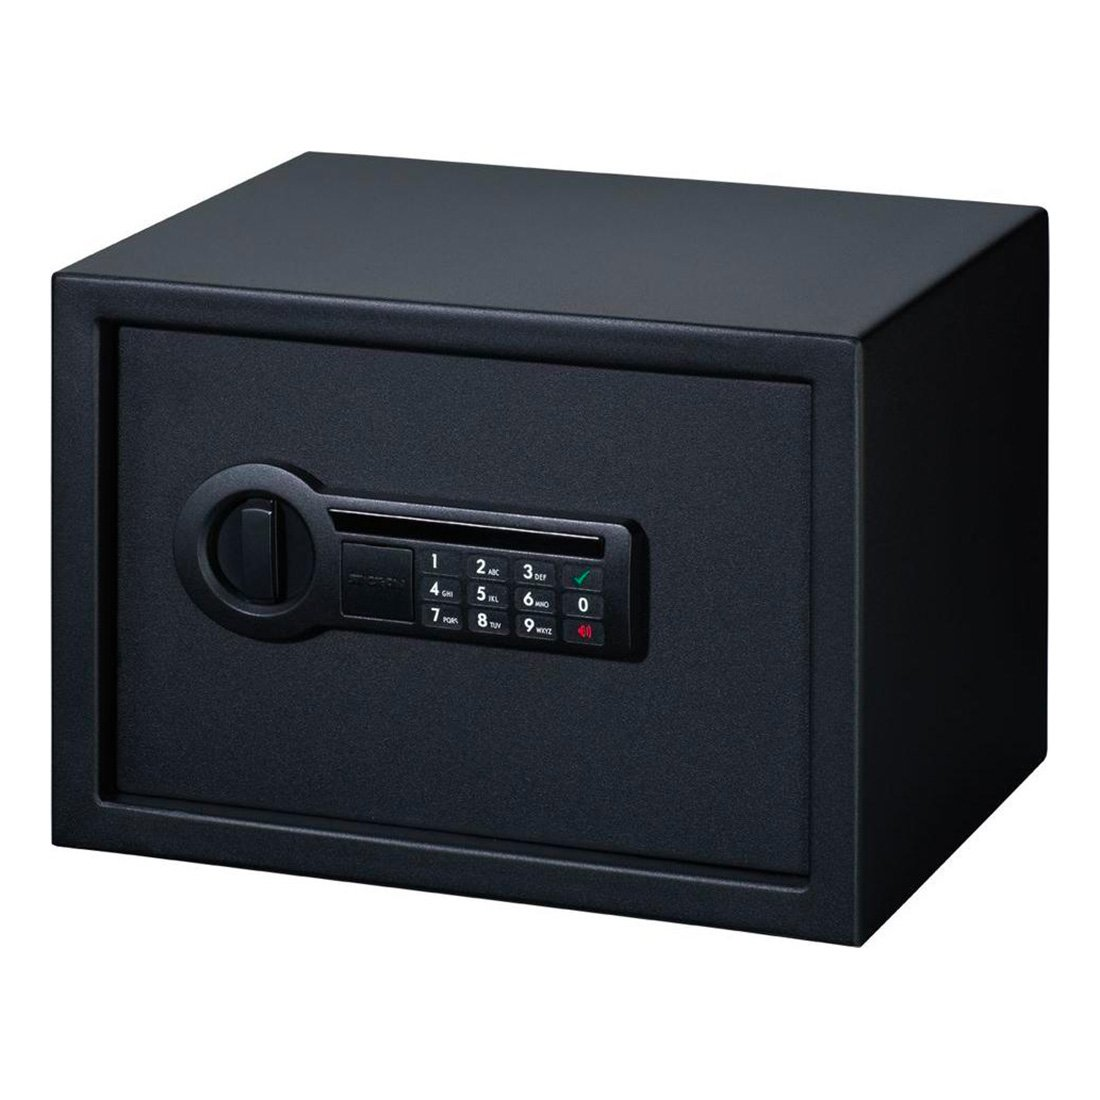 Stack-On PS-1514 Personal Safe with Electronic Lock